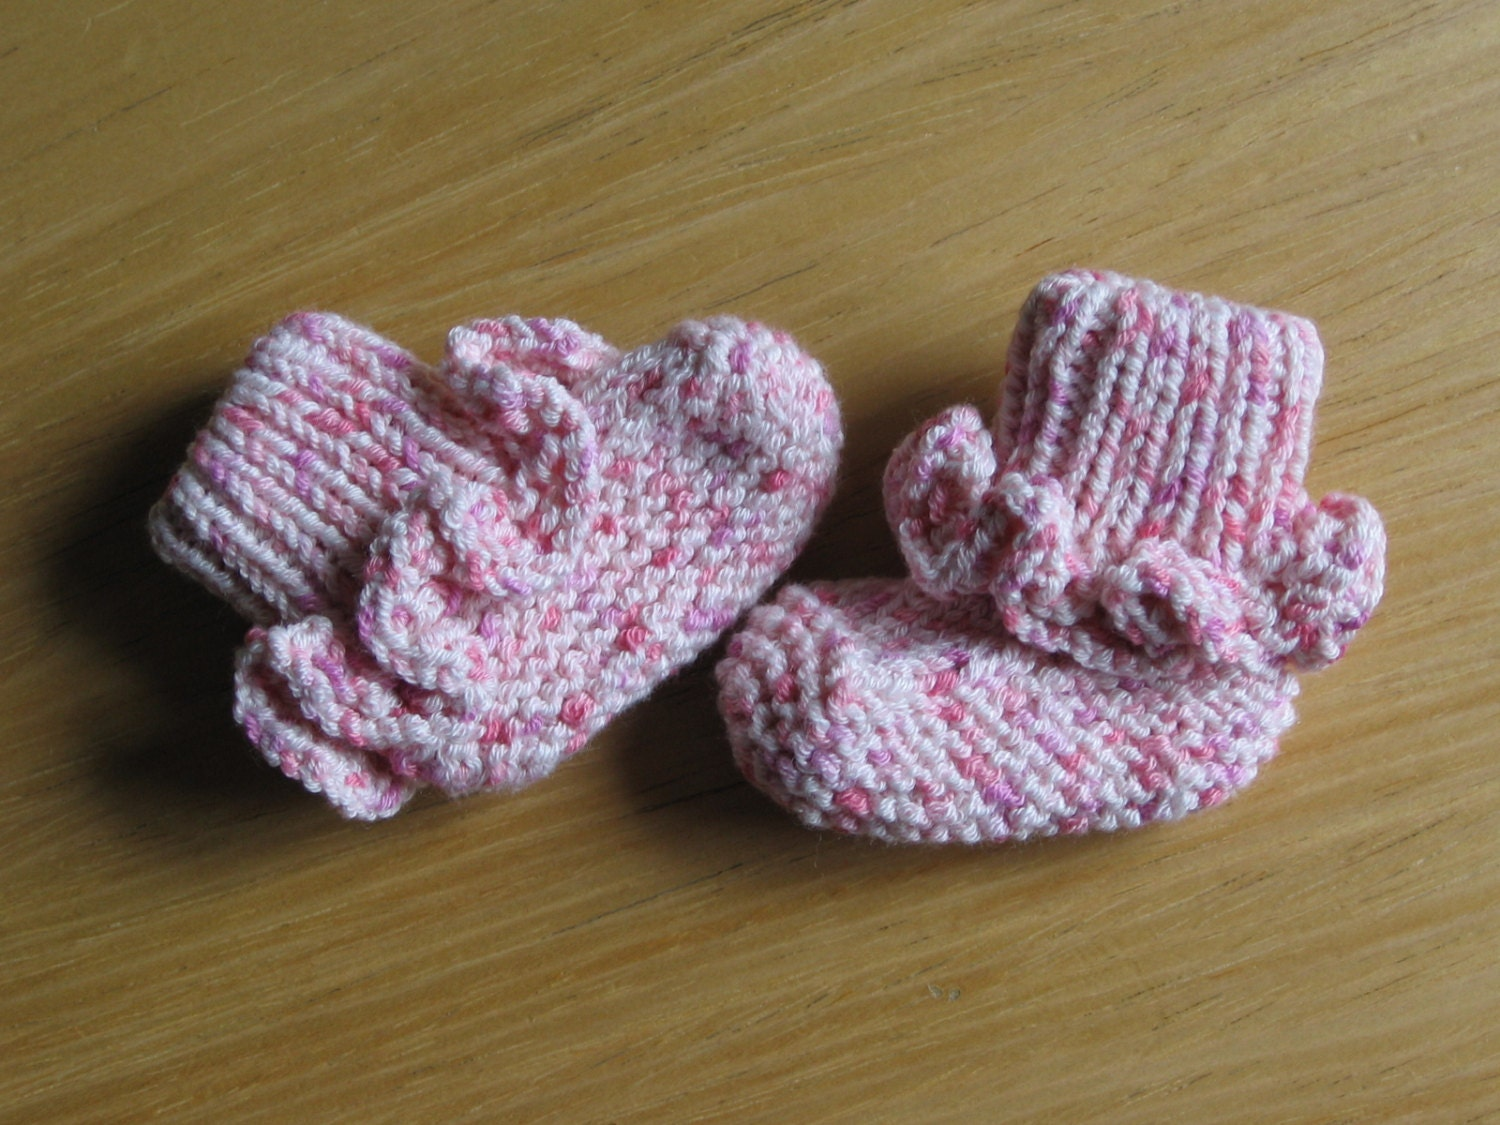 Knitting Patterns For Seamless Baby Booties : Seamless Stay-Put Baby Booties knitting pattern pdf digital